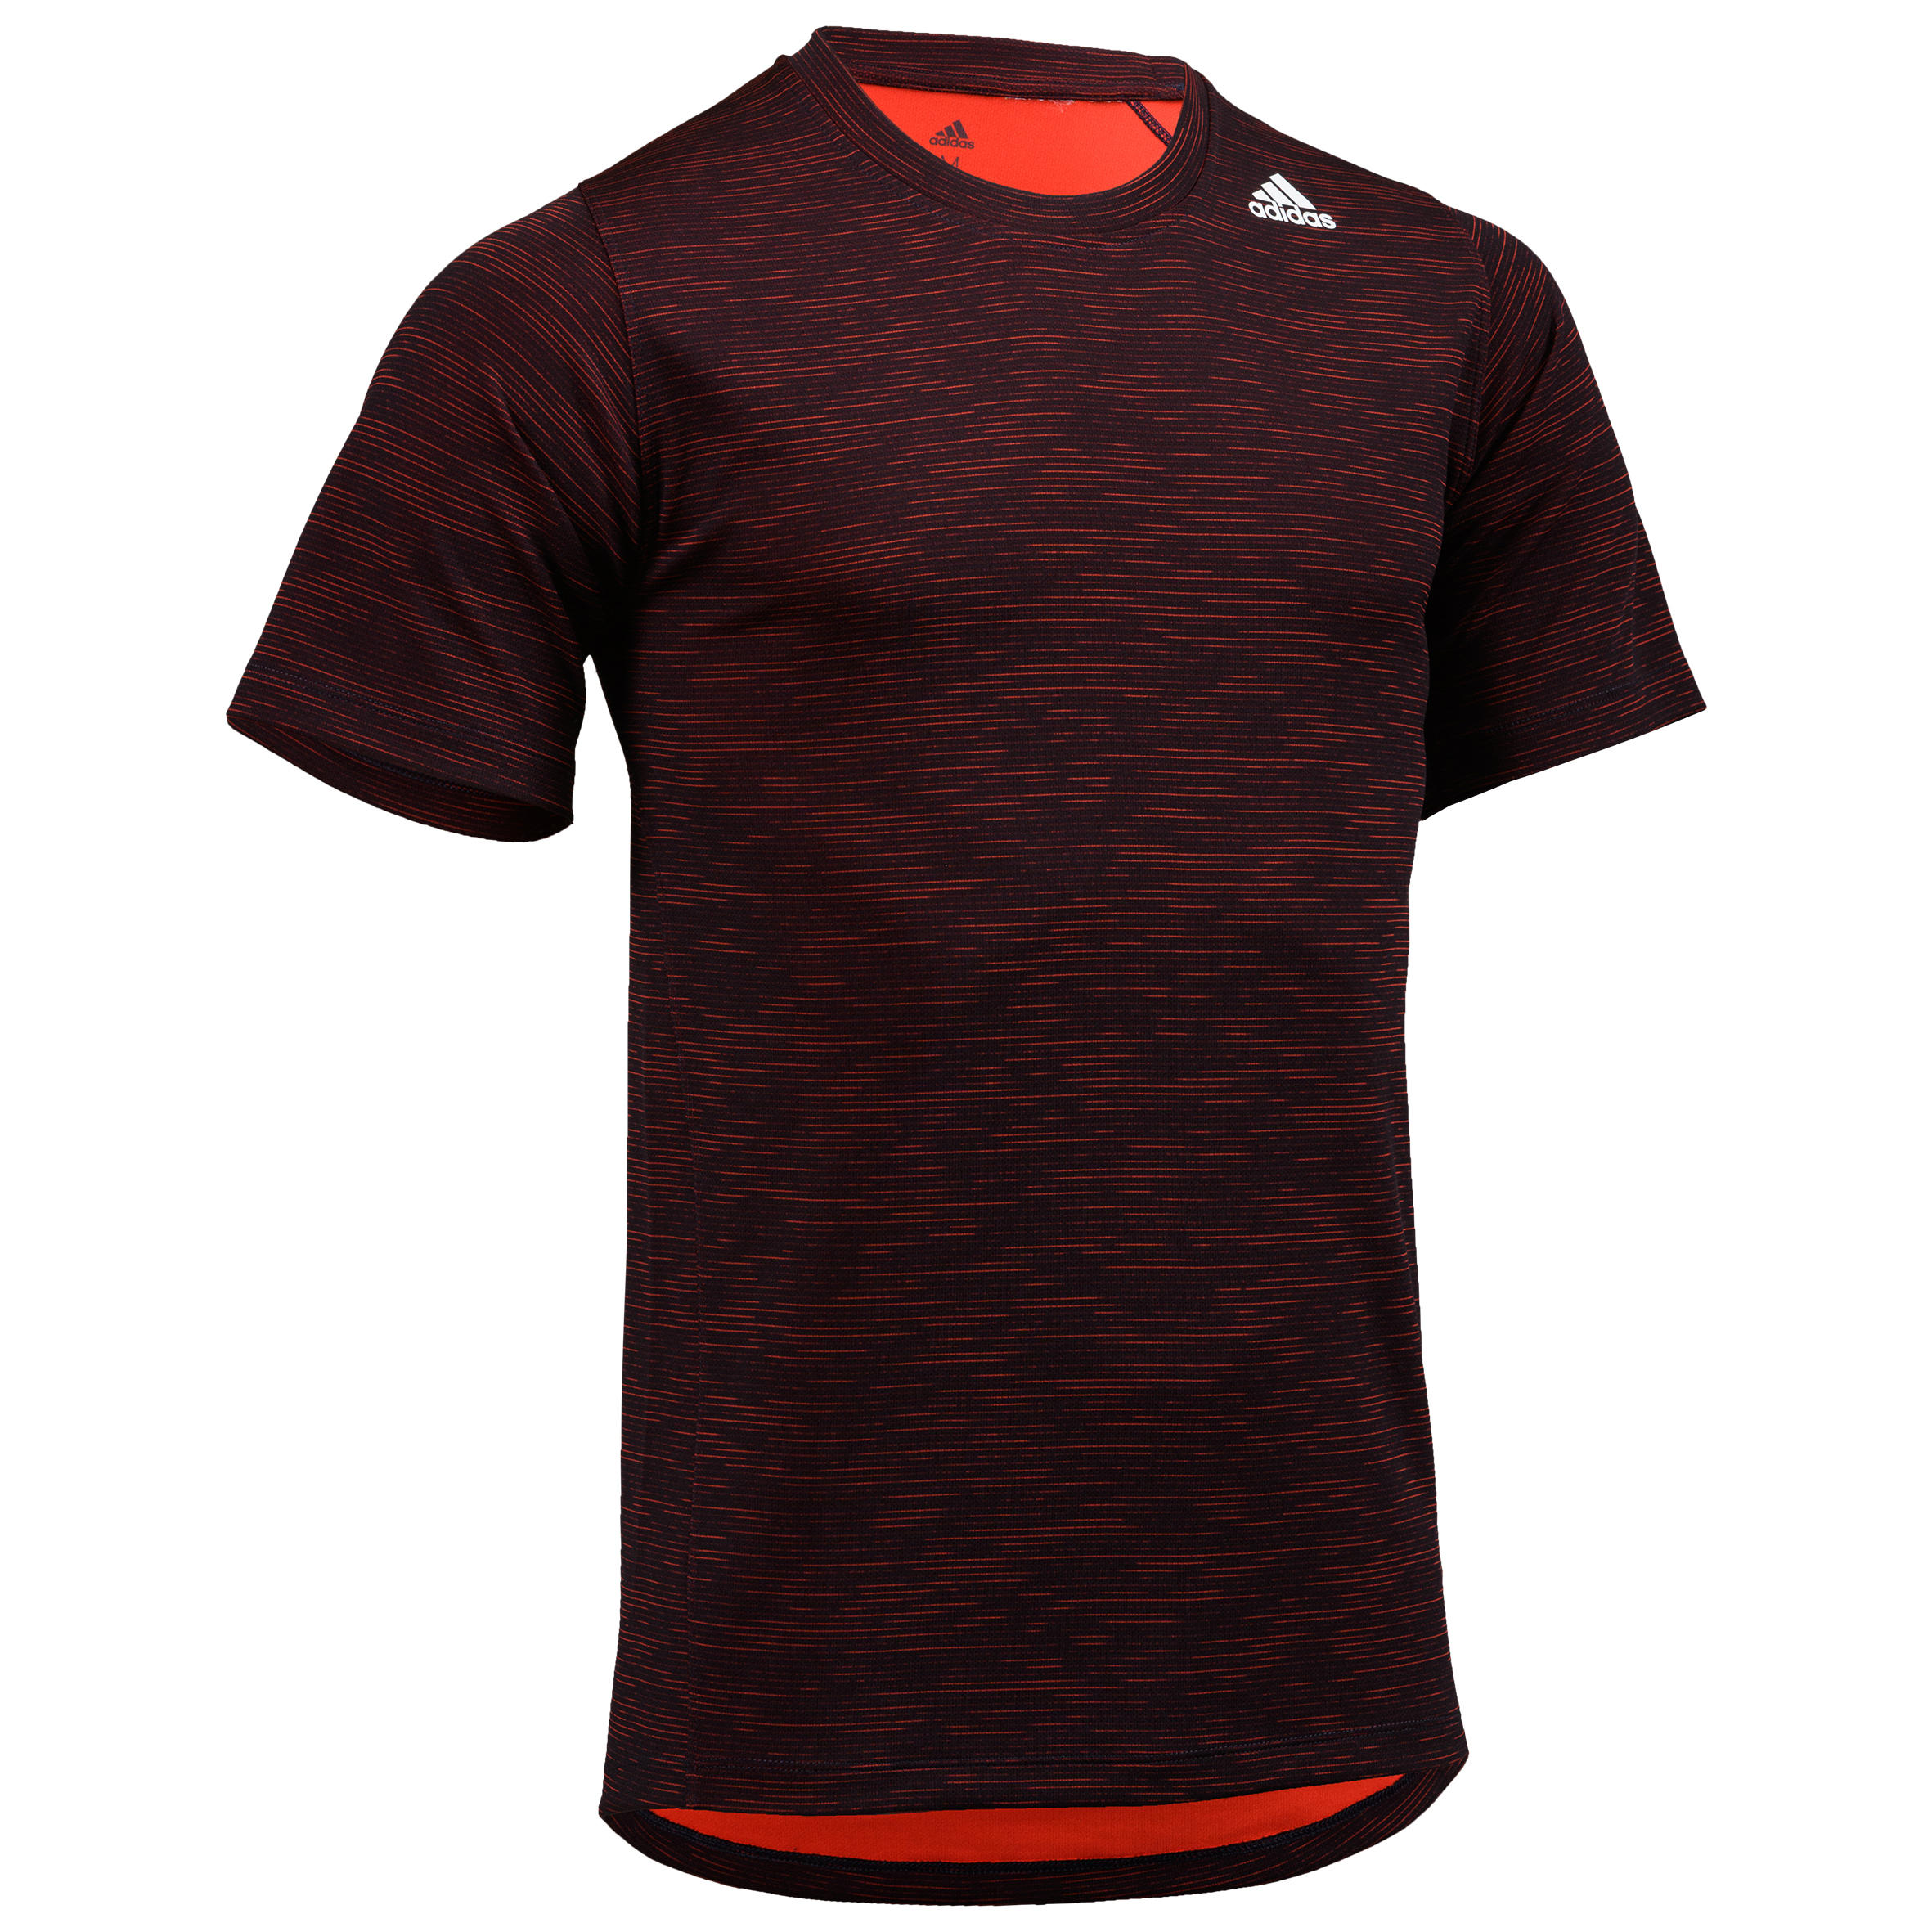 tee shirt homme adidas rouge